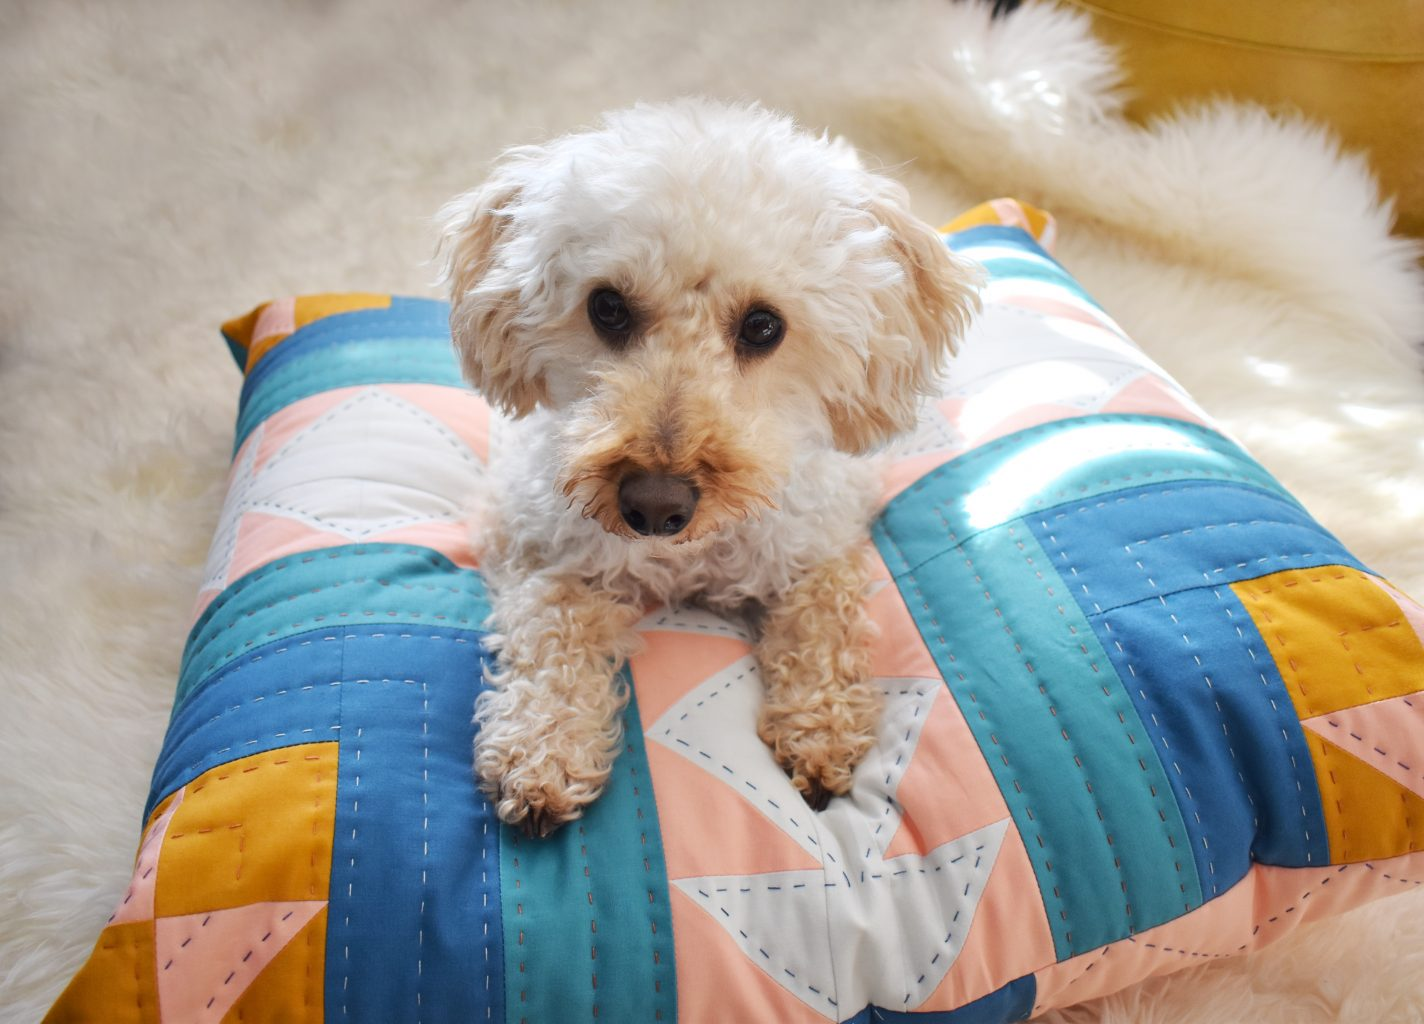 A quilted dog bed is the perfect mix of chic and cozy